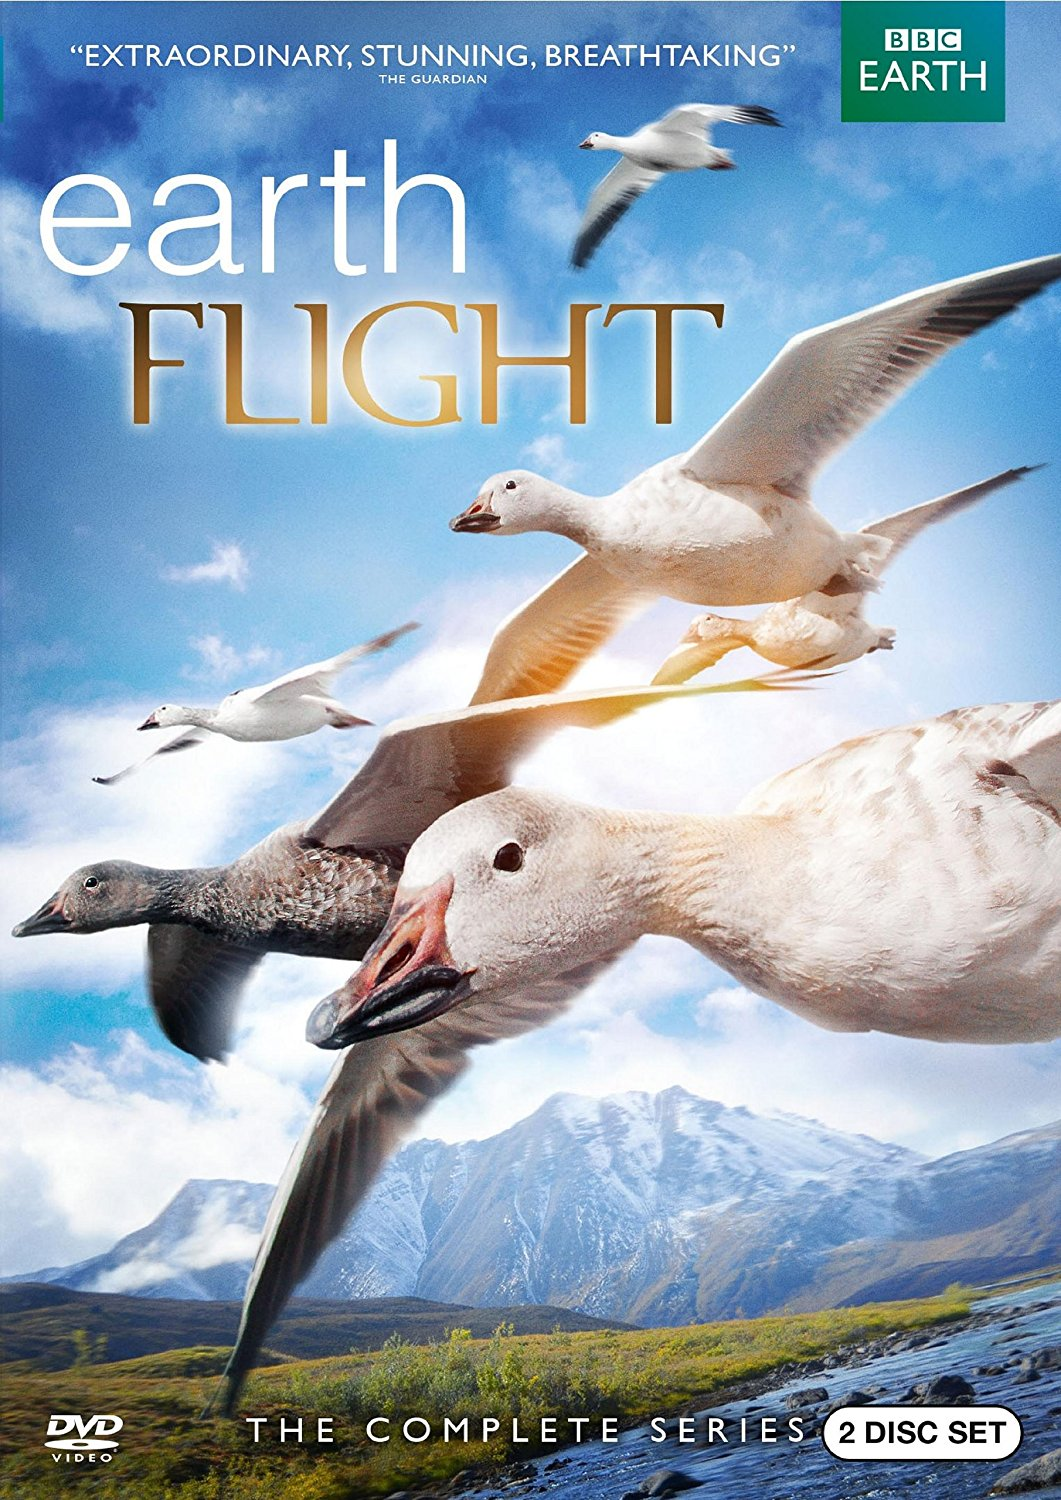 LLCT Movie Night Presents: Mystery Earthflight Episode